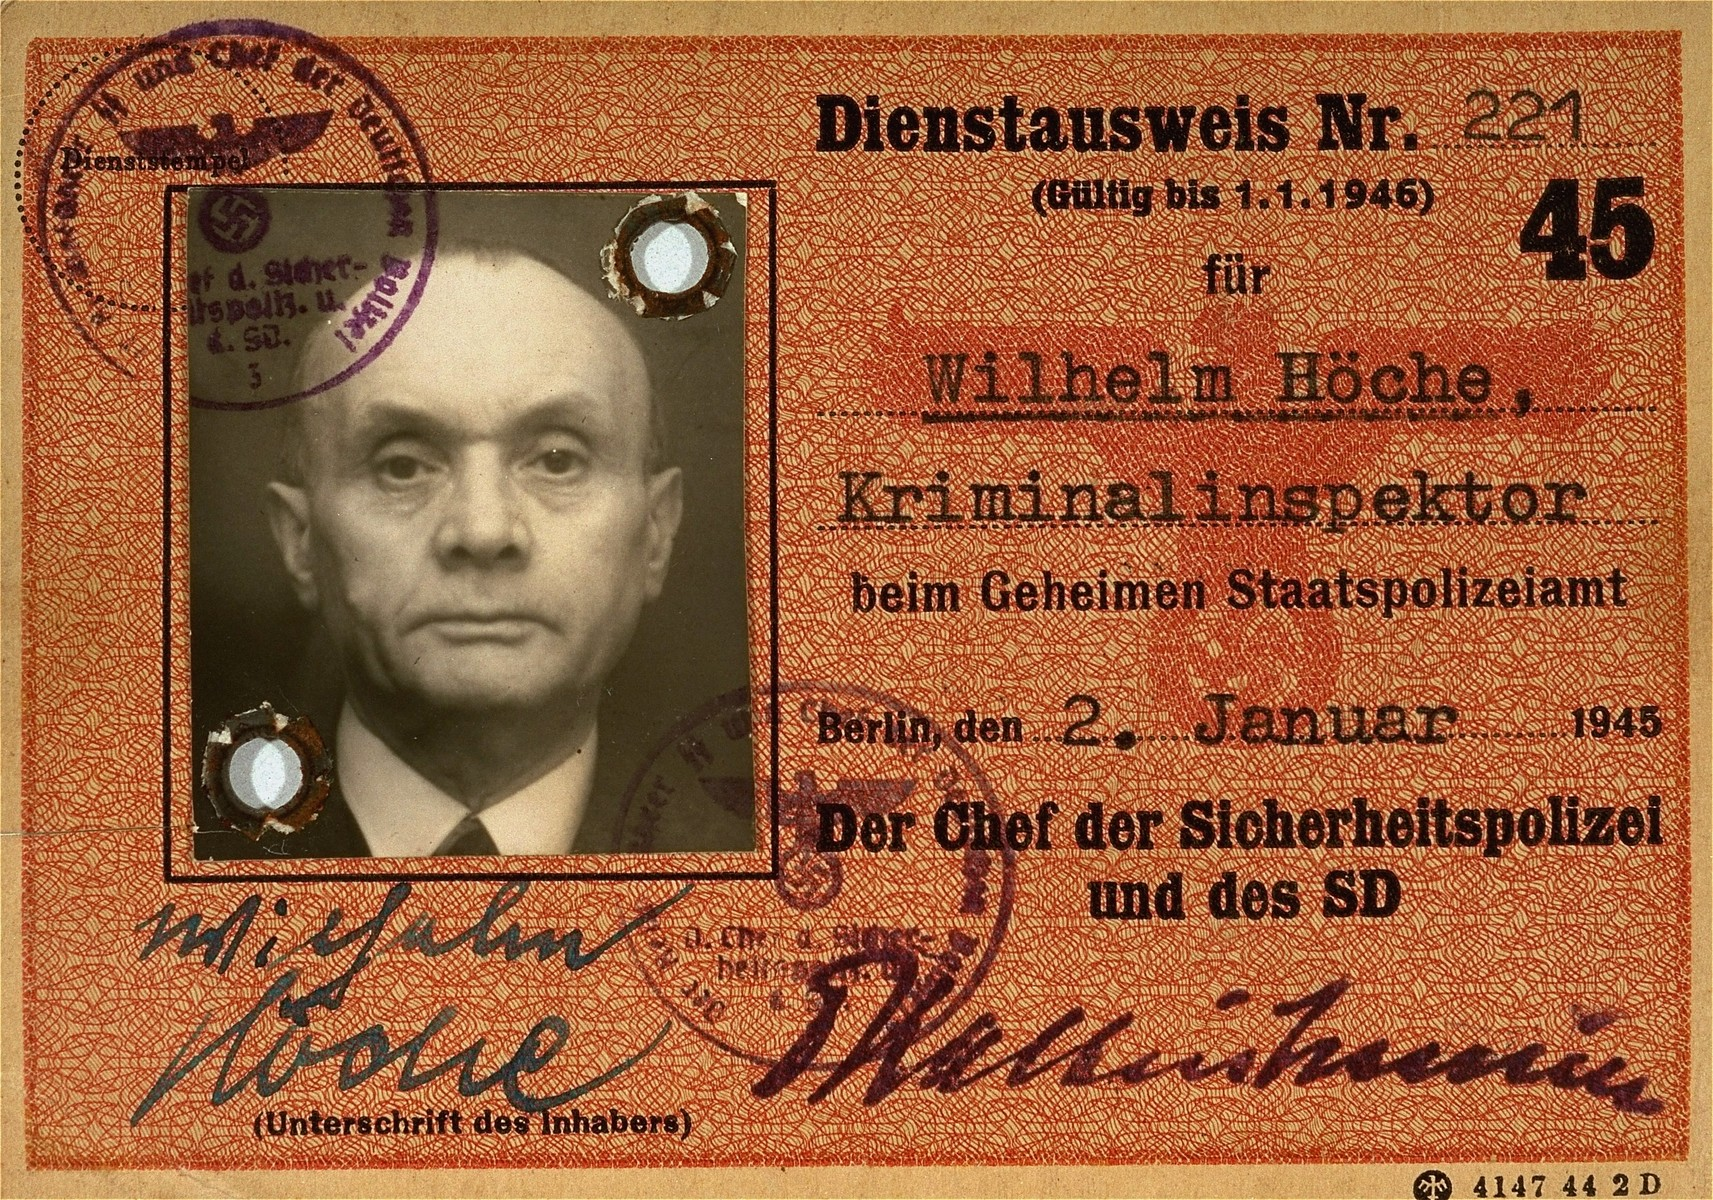 The identification card of Wilhelm Hoeche, a criminal inspector with the Gestapo.